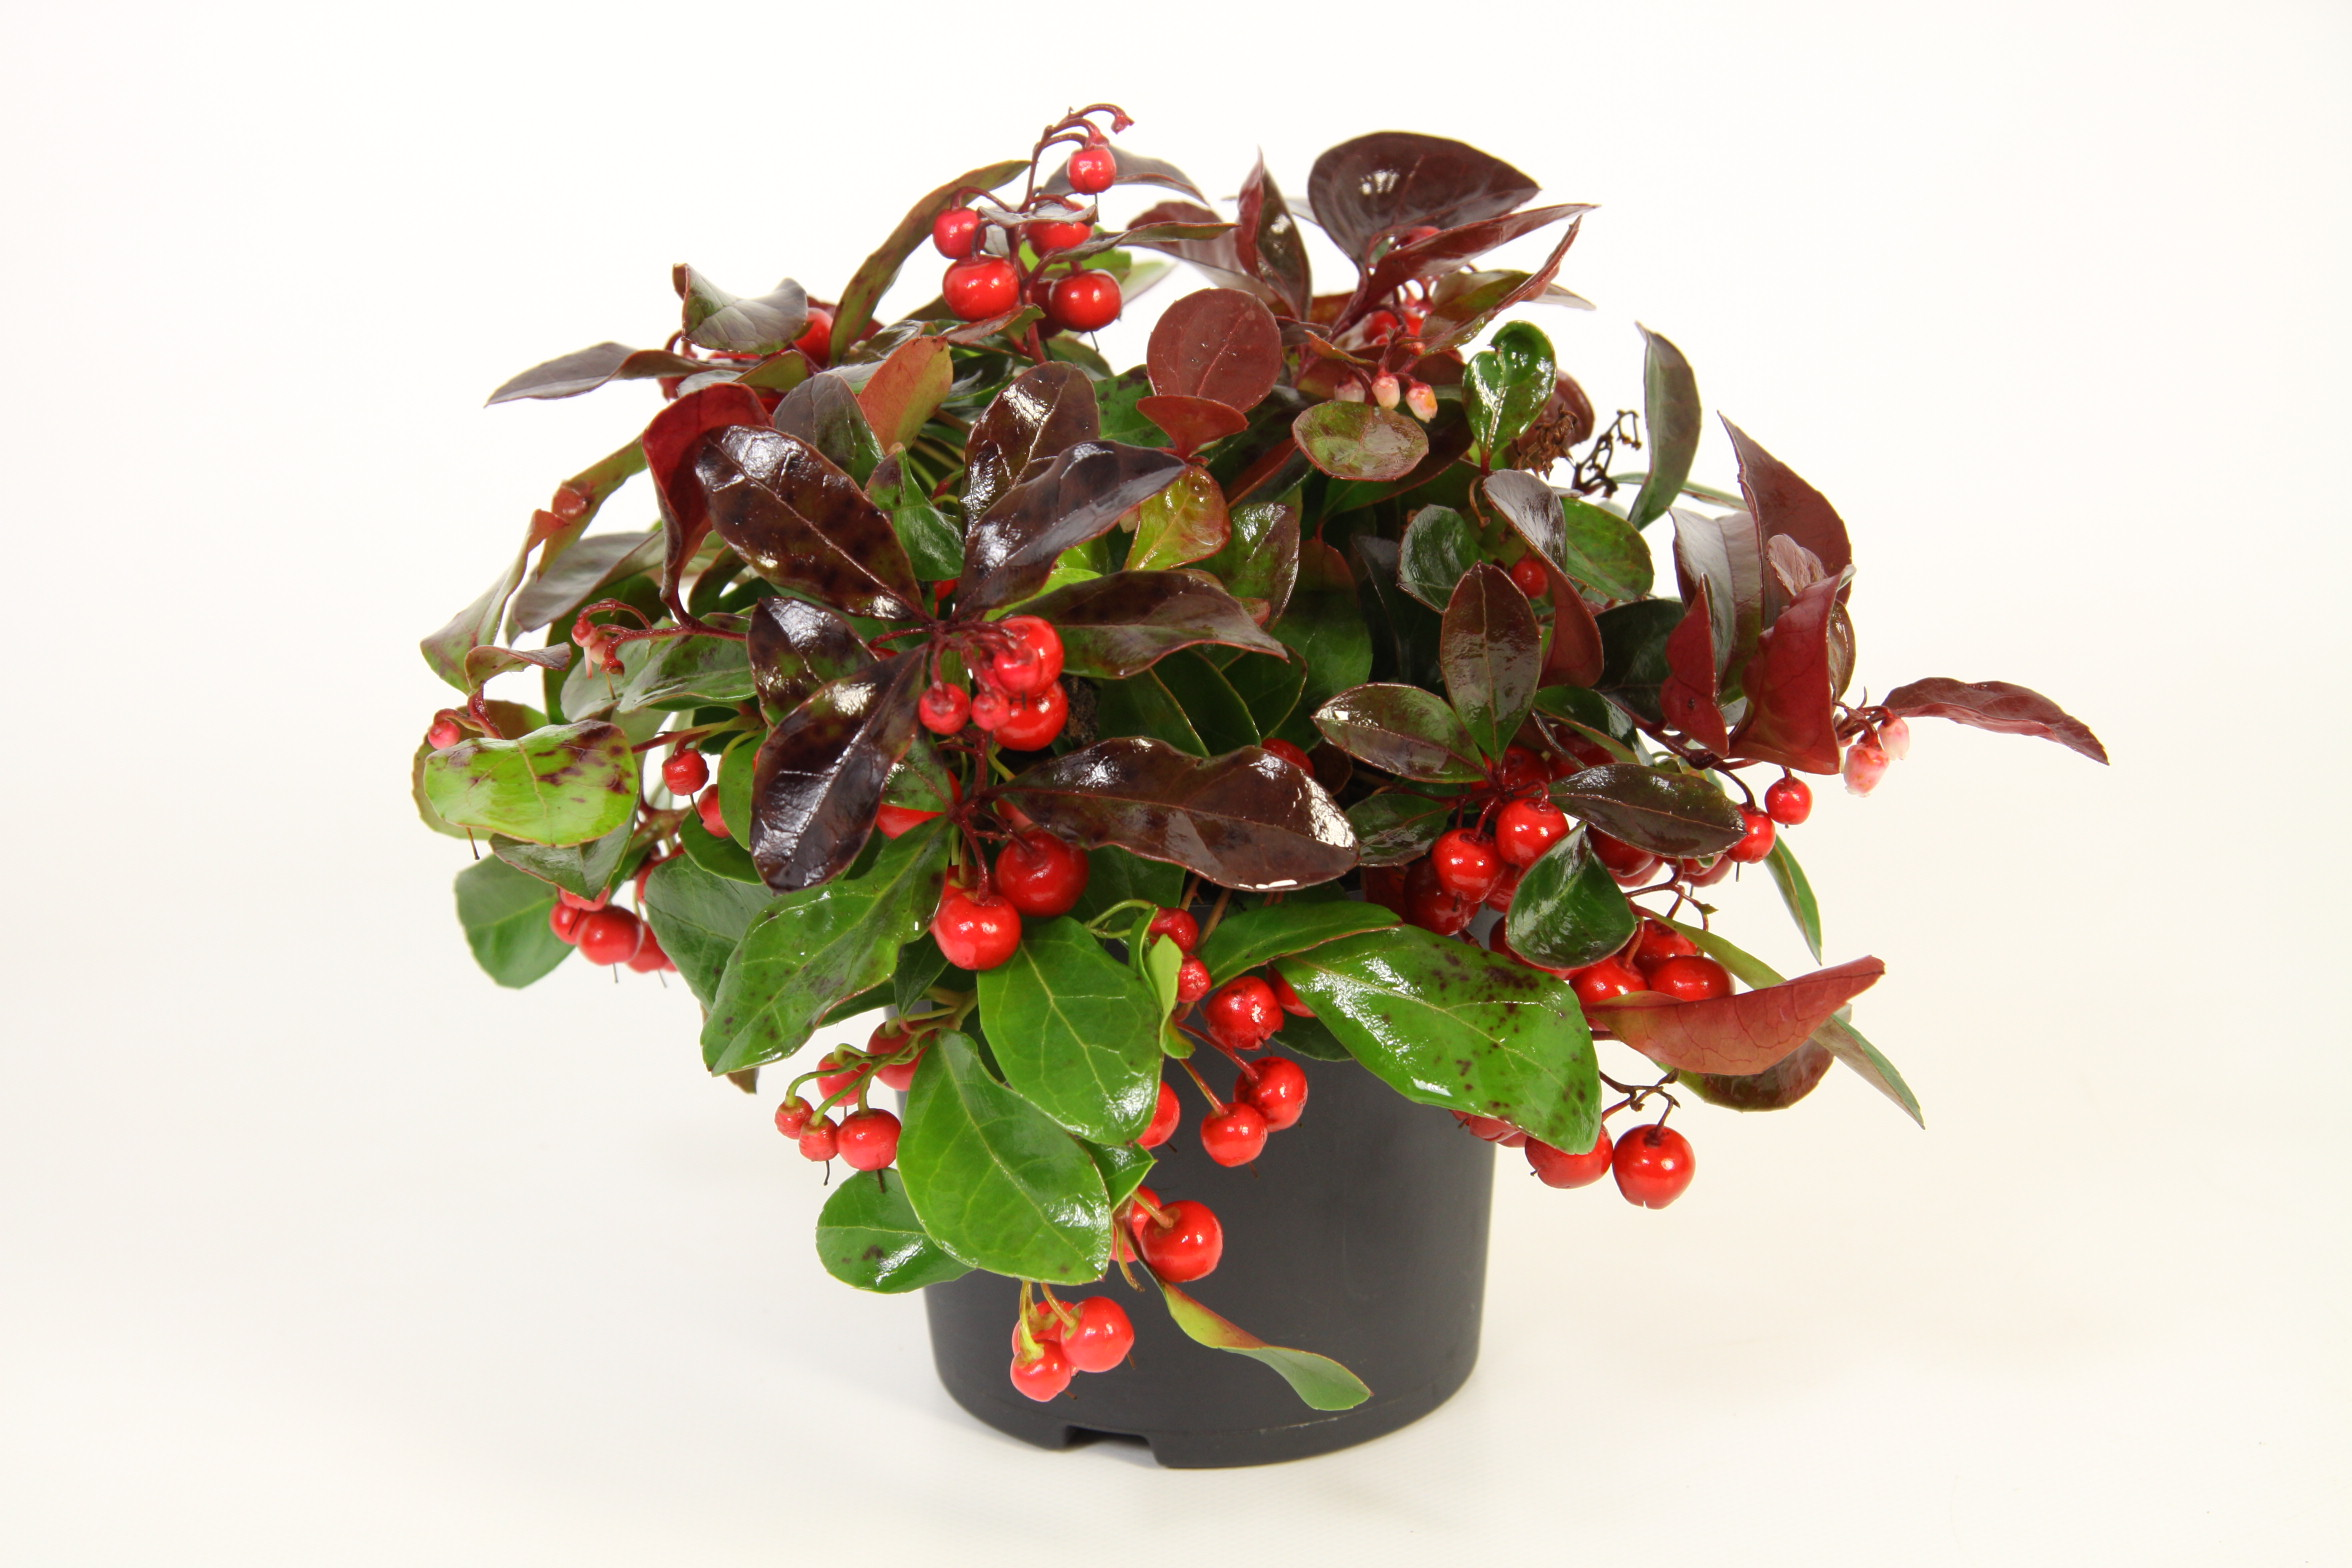 Bergthee 39 big berry 39 gaultheria 39 big berry 39 for Plante hivernale en pot